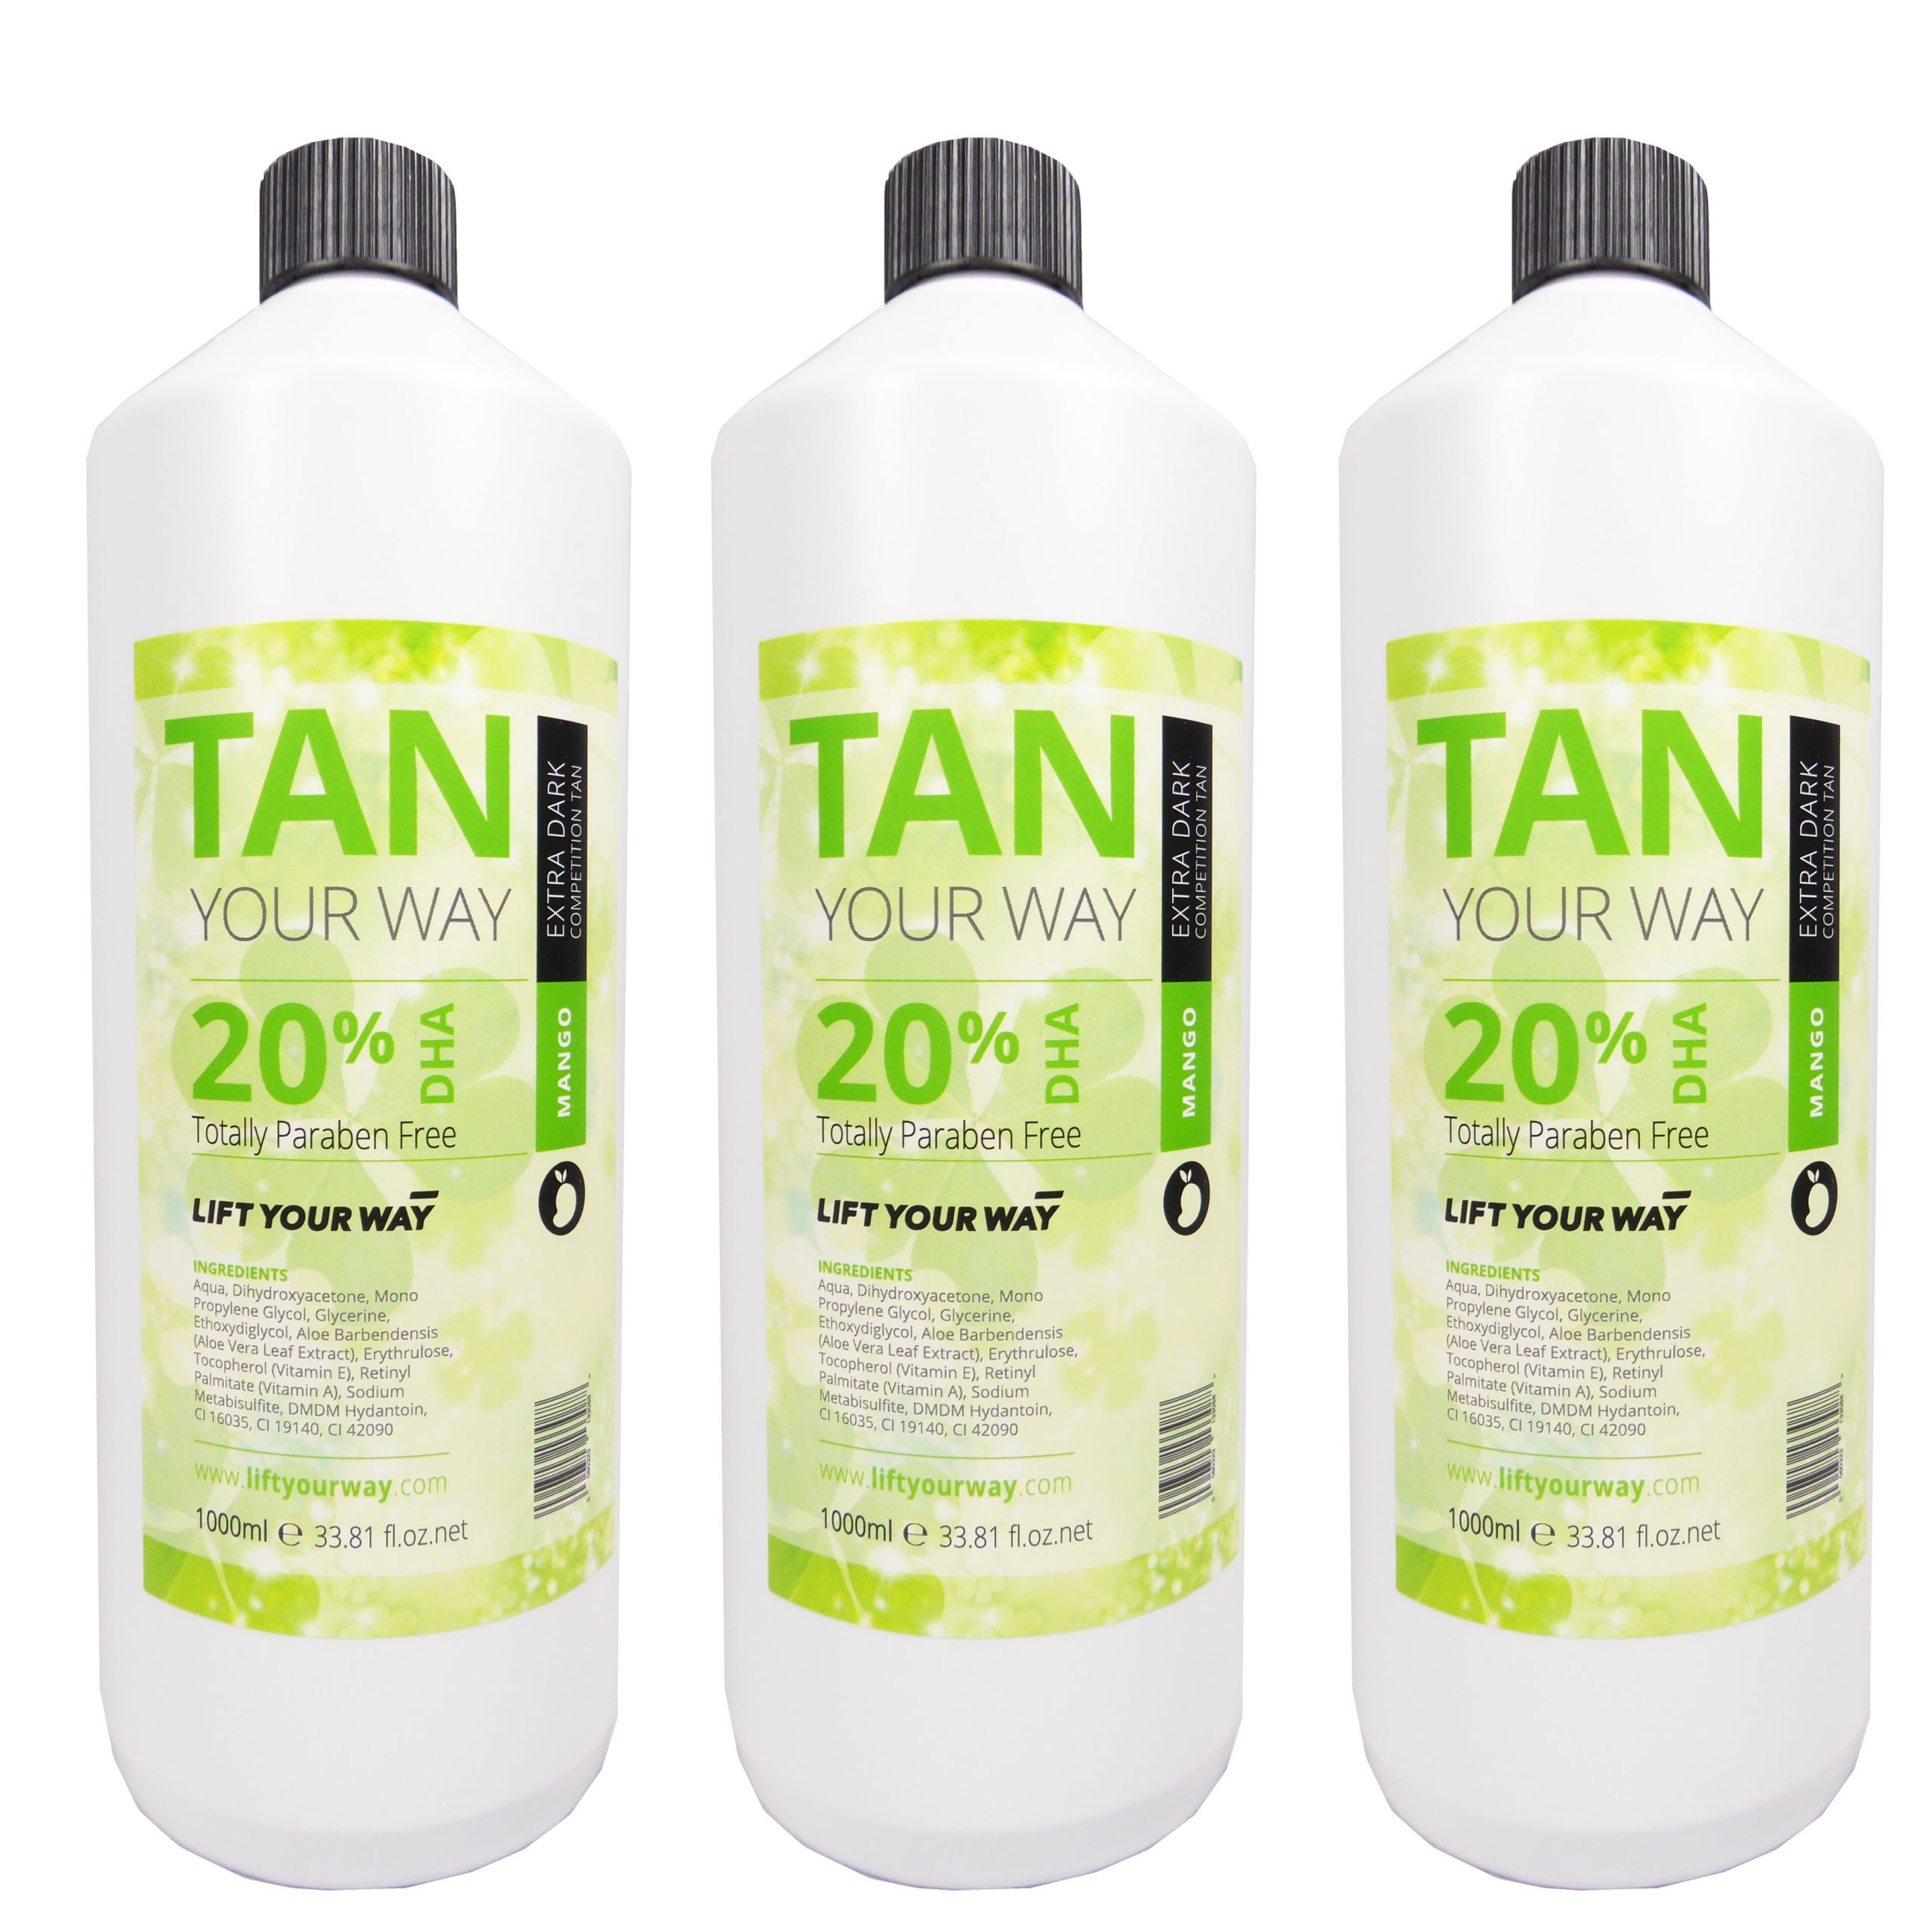 3 litres of super dark competition tan